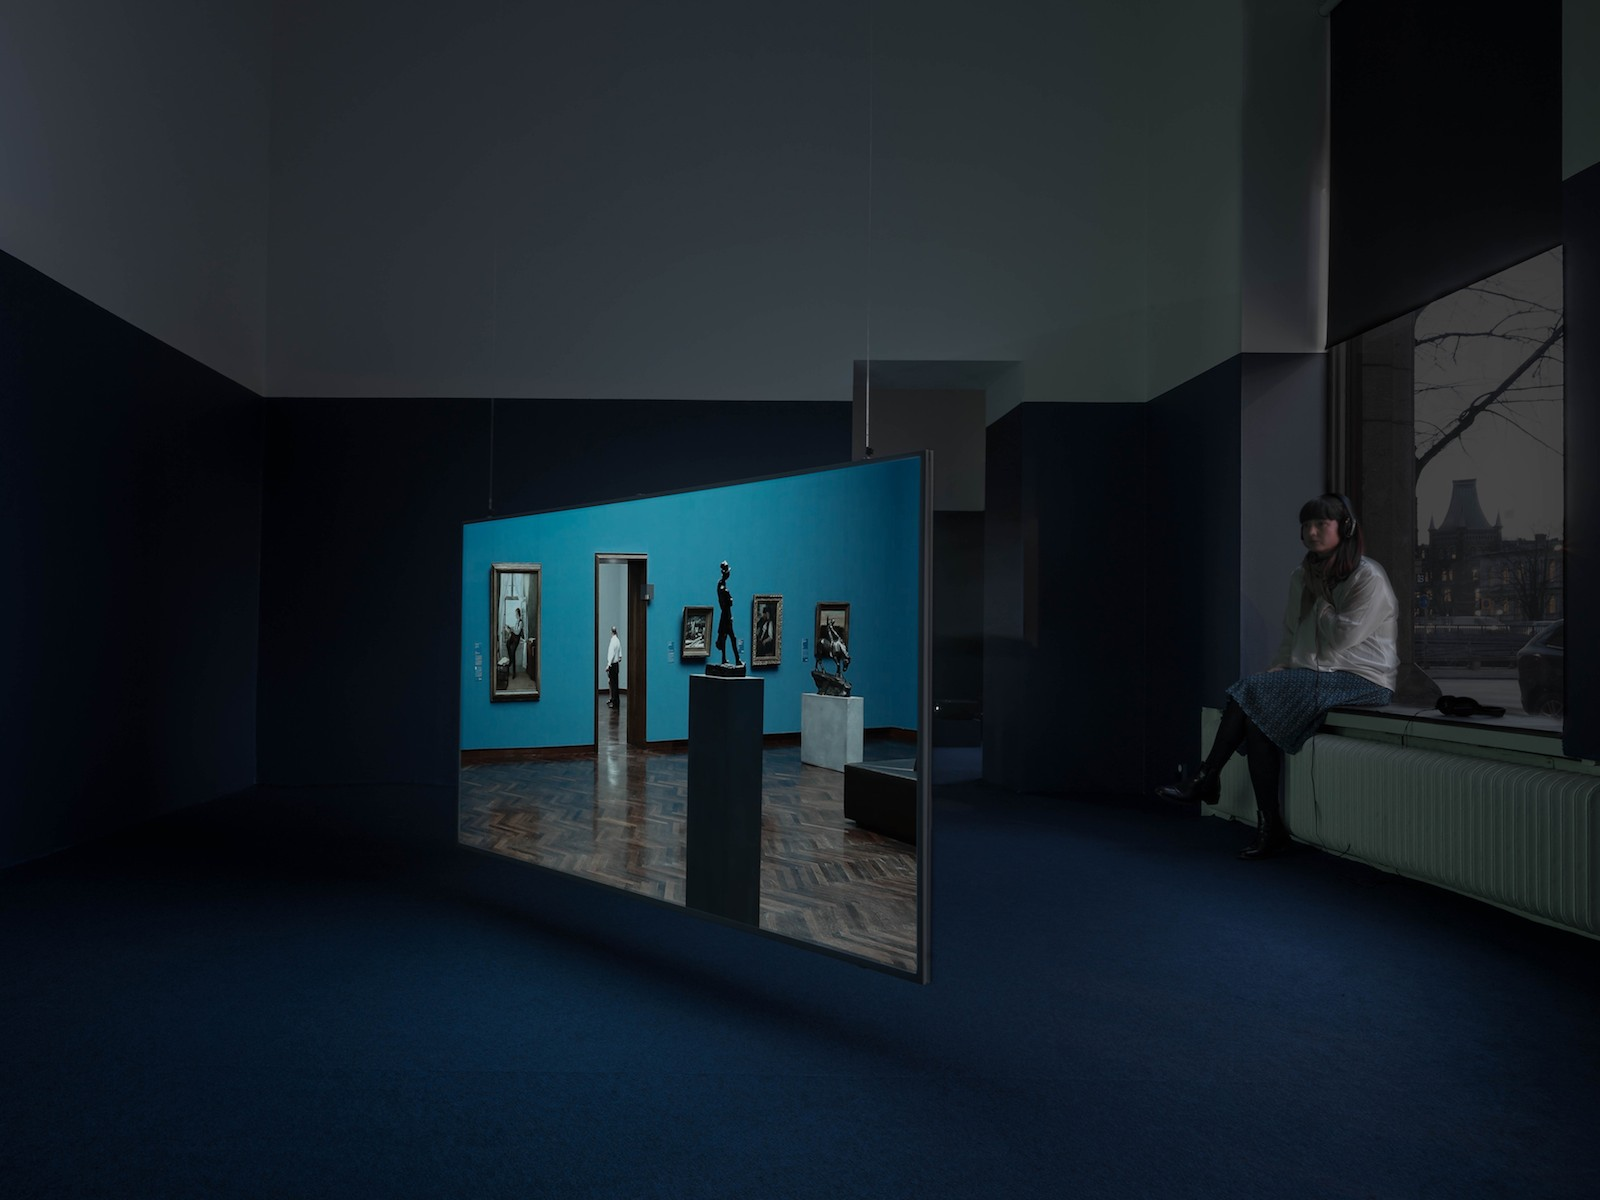 Waves, 2014-15, HD video with sound, 19 minutes 23 seconds. Installation view, For Every Word Has Its Own Shadow, Galleri Riis, Stockholm, 2015